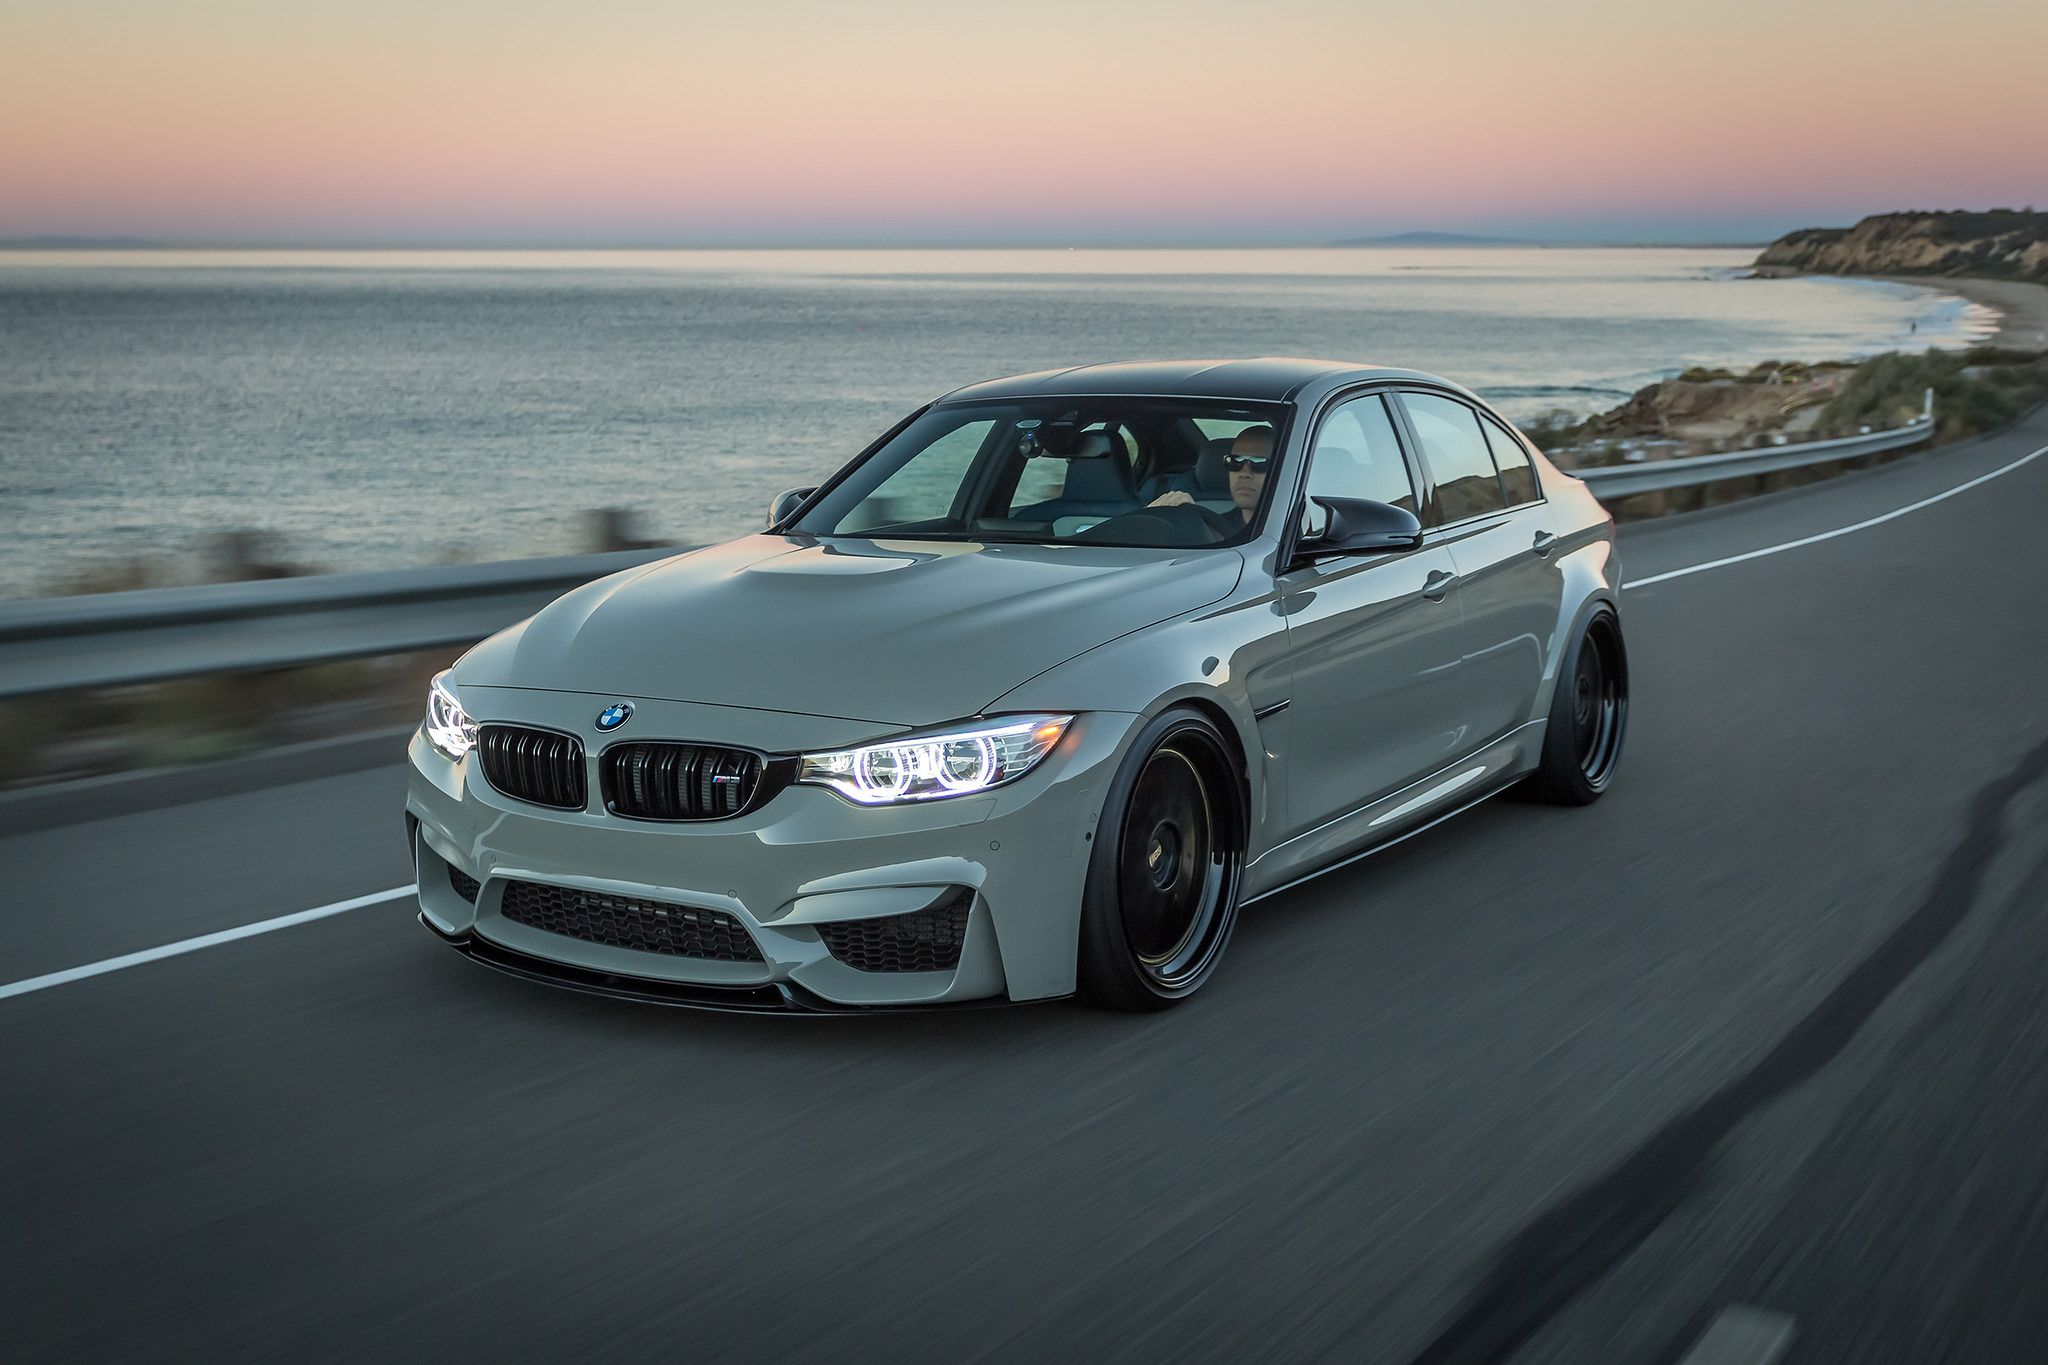 Image Result For F80 Grey Bmw F80 M3 2012 Bmw M3